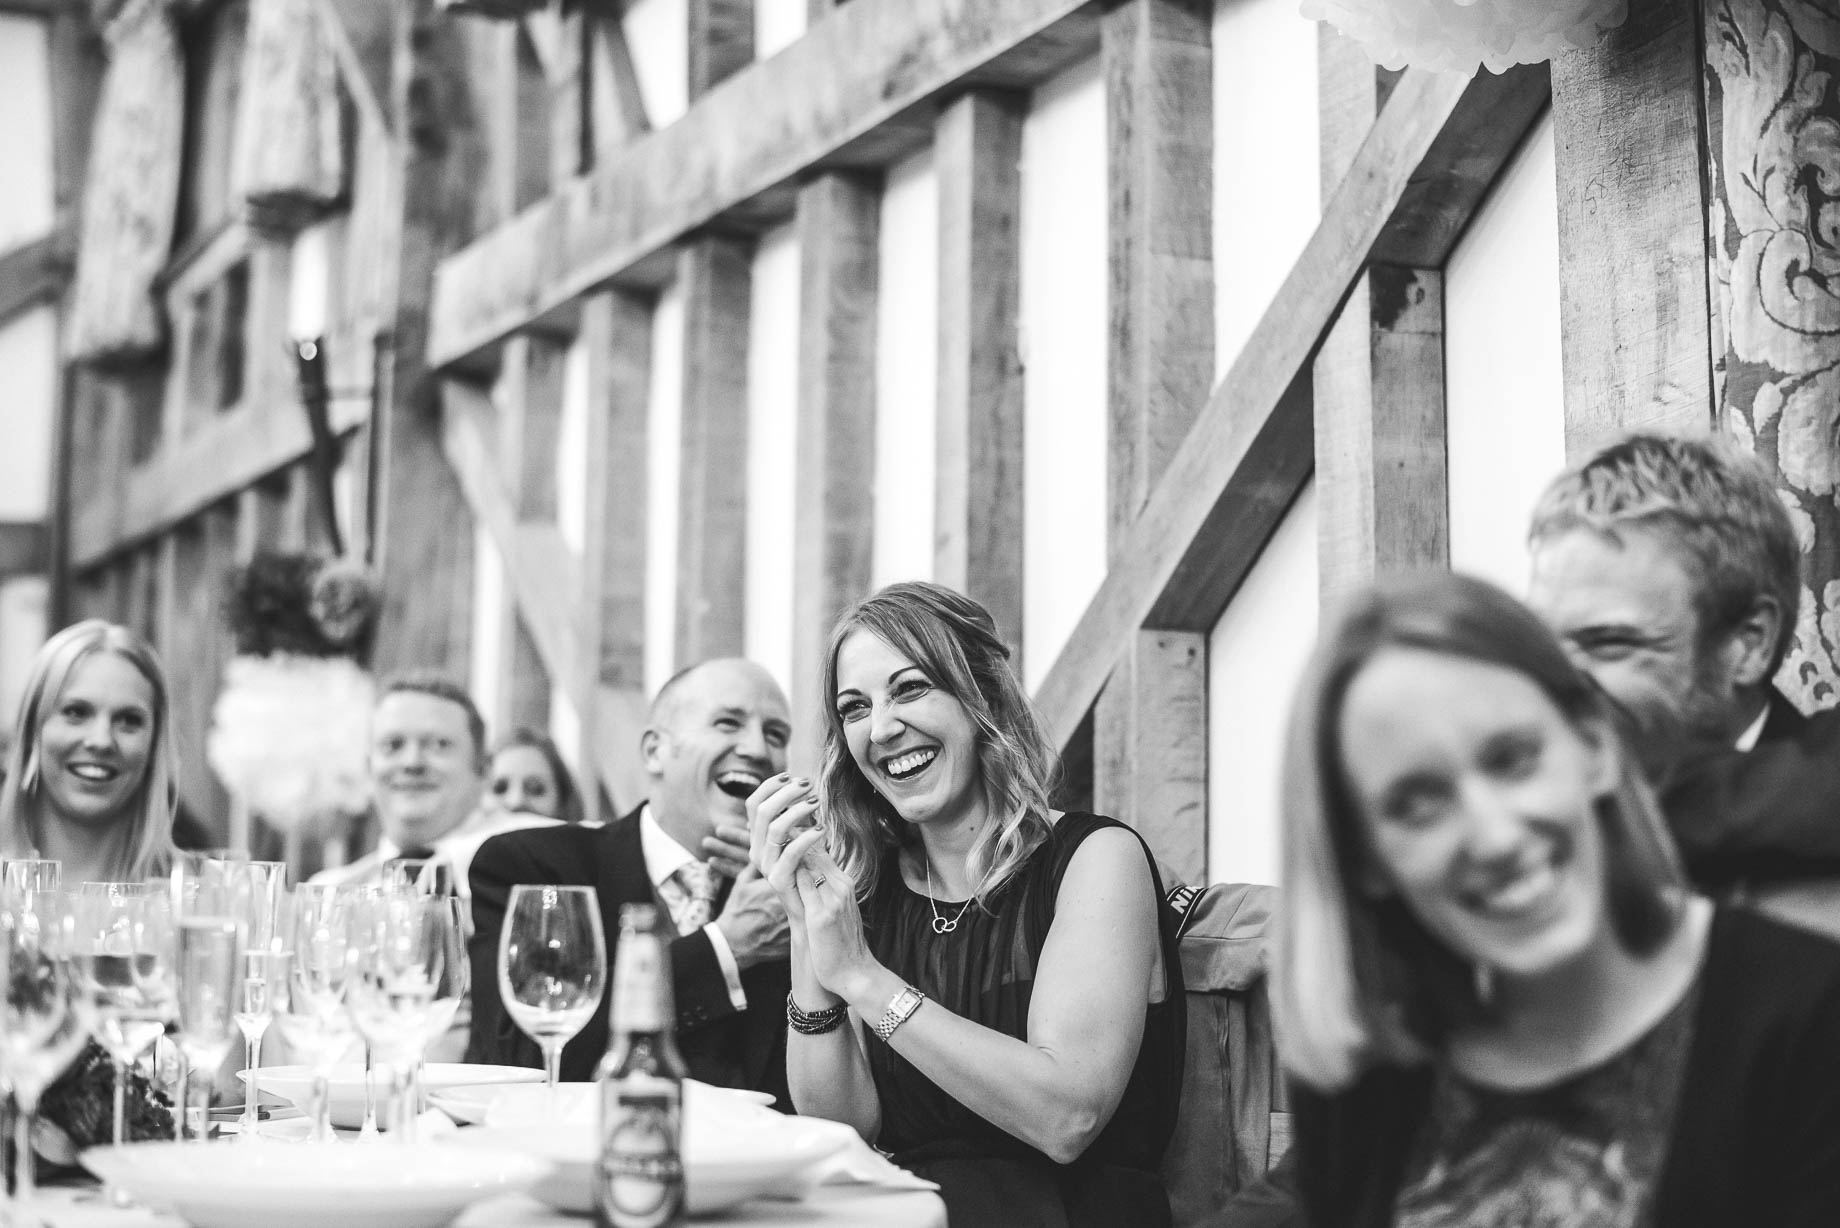 Gate Street Barn wedding photography - Guy Collier - Claire and Andy (164 of 192)